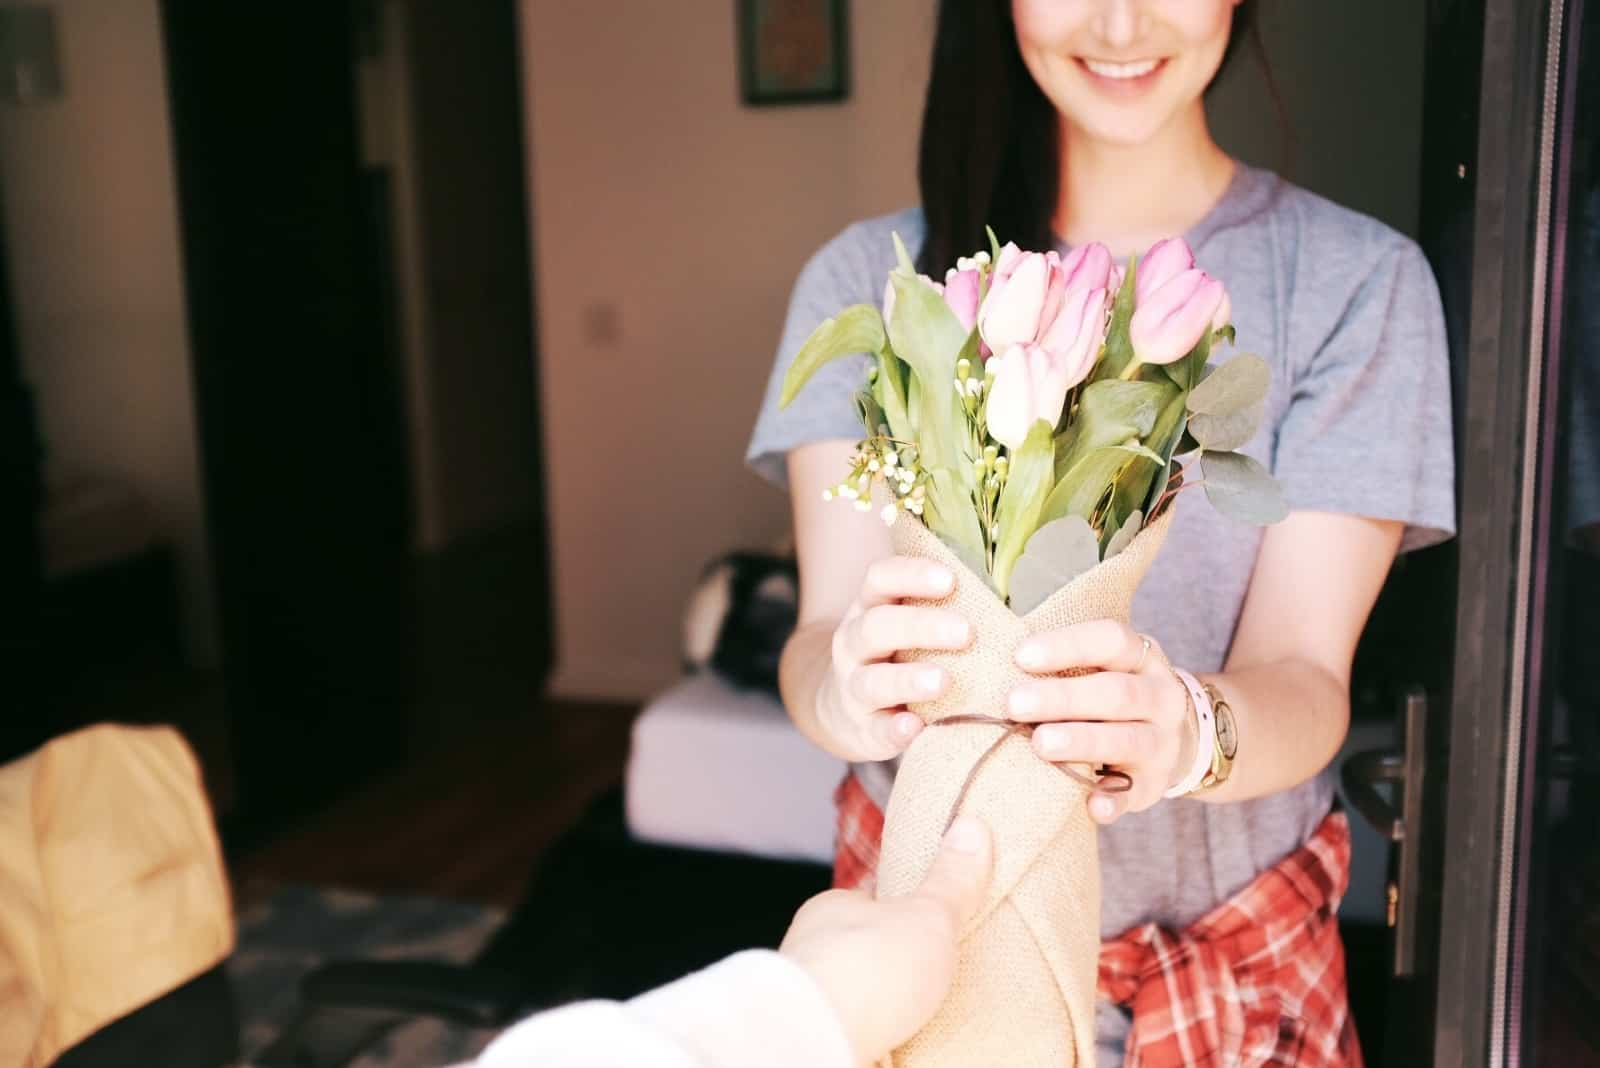 man giving bouquet of flowers to woman in gray t-shirt